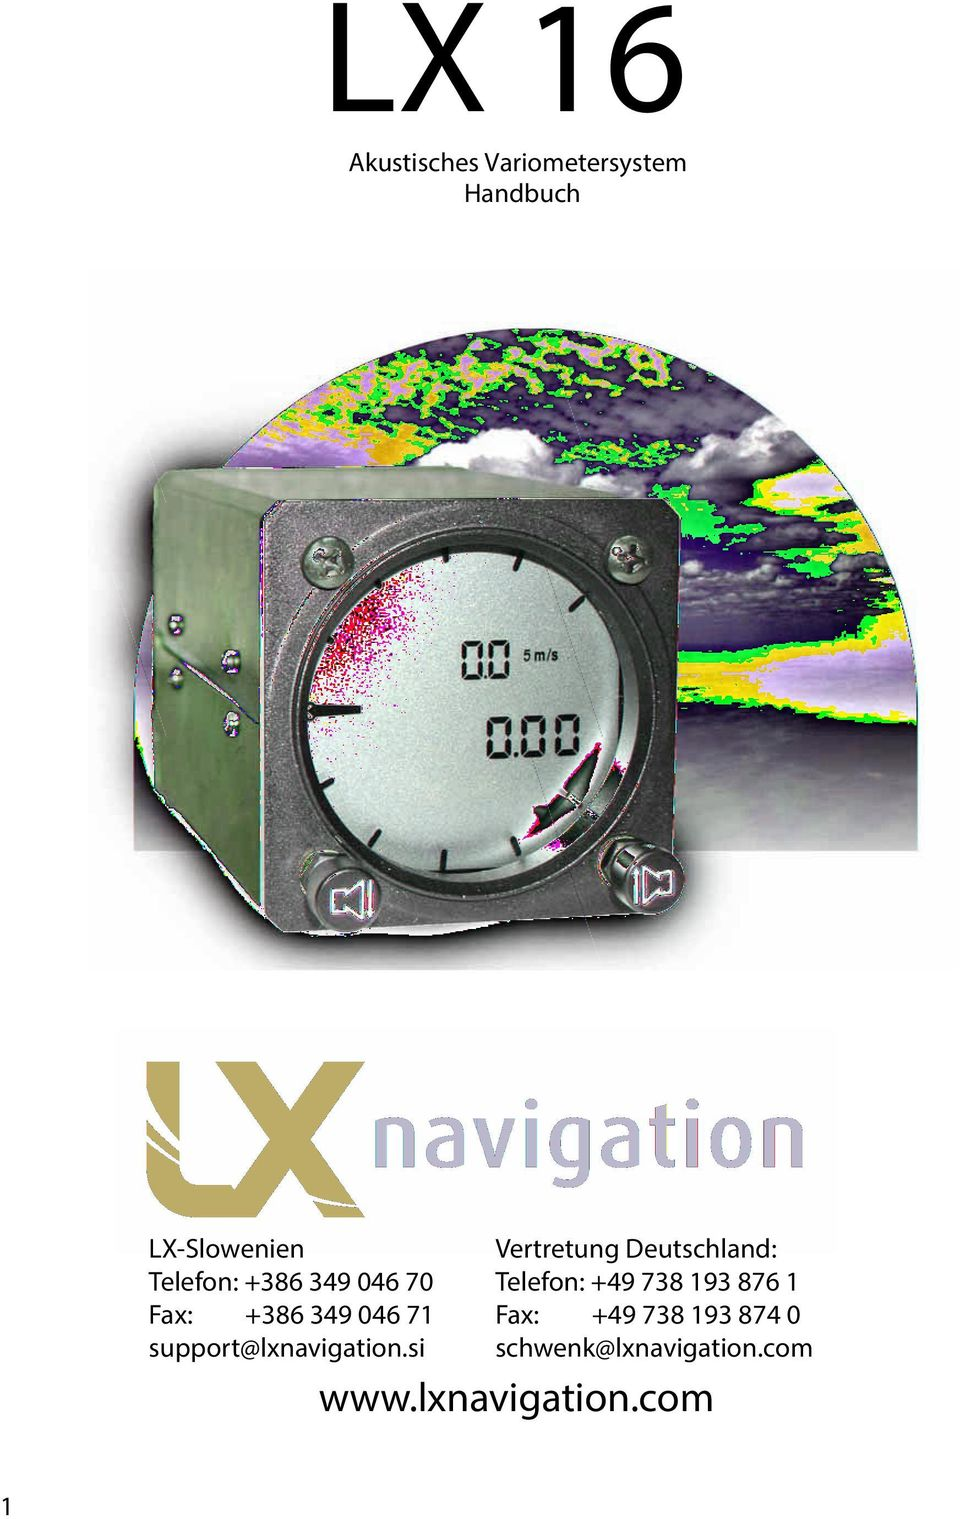 support@lxnavigation.